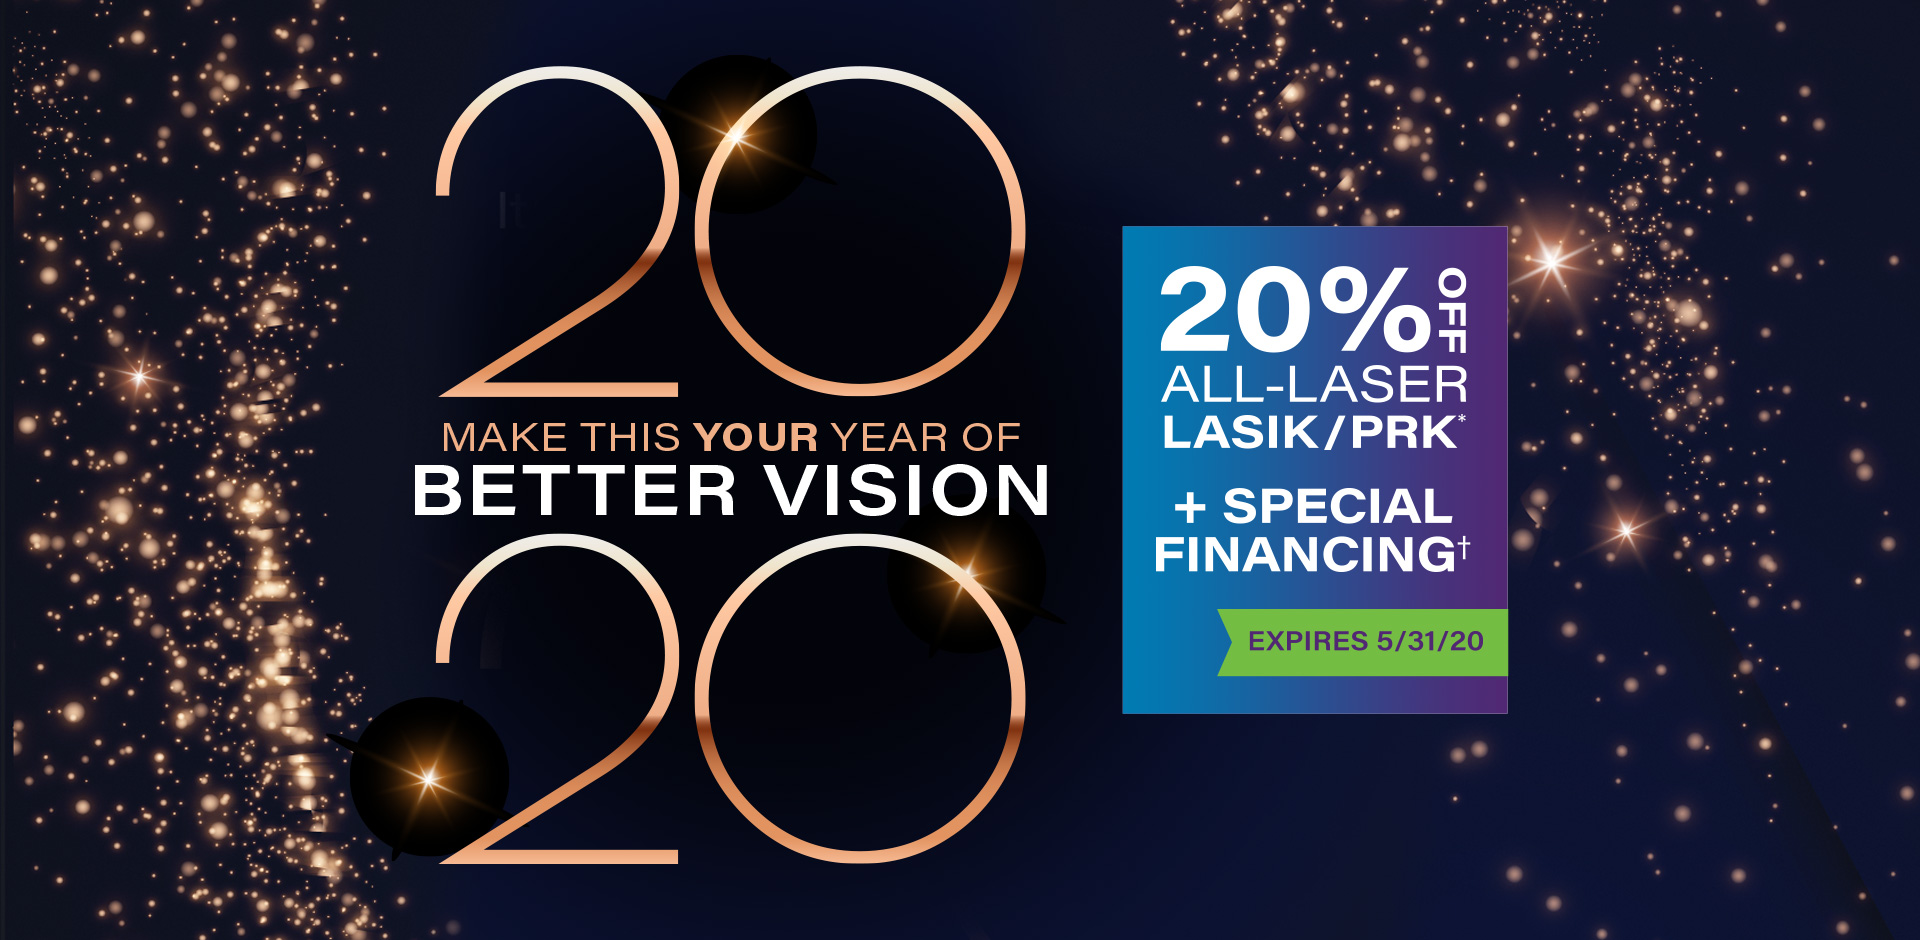 Make this your year of better vision. 20% Off all-laser LASIK/PRK & Special Financing. Expires 5/31/20